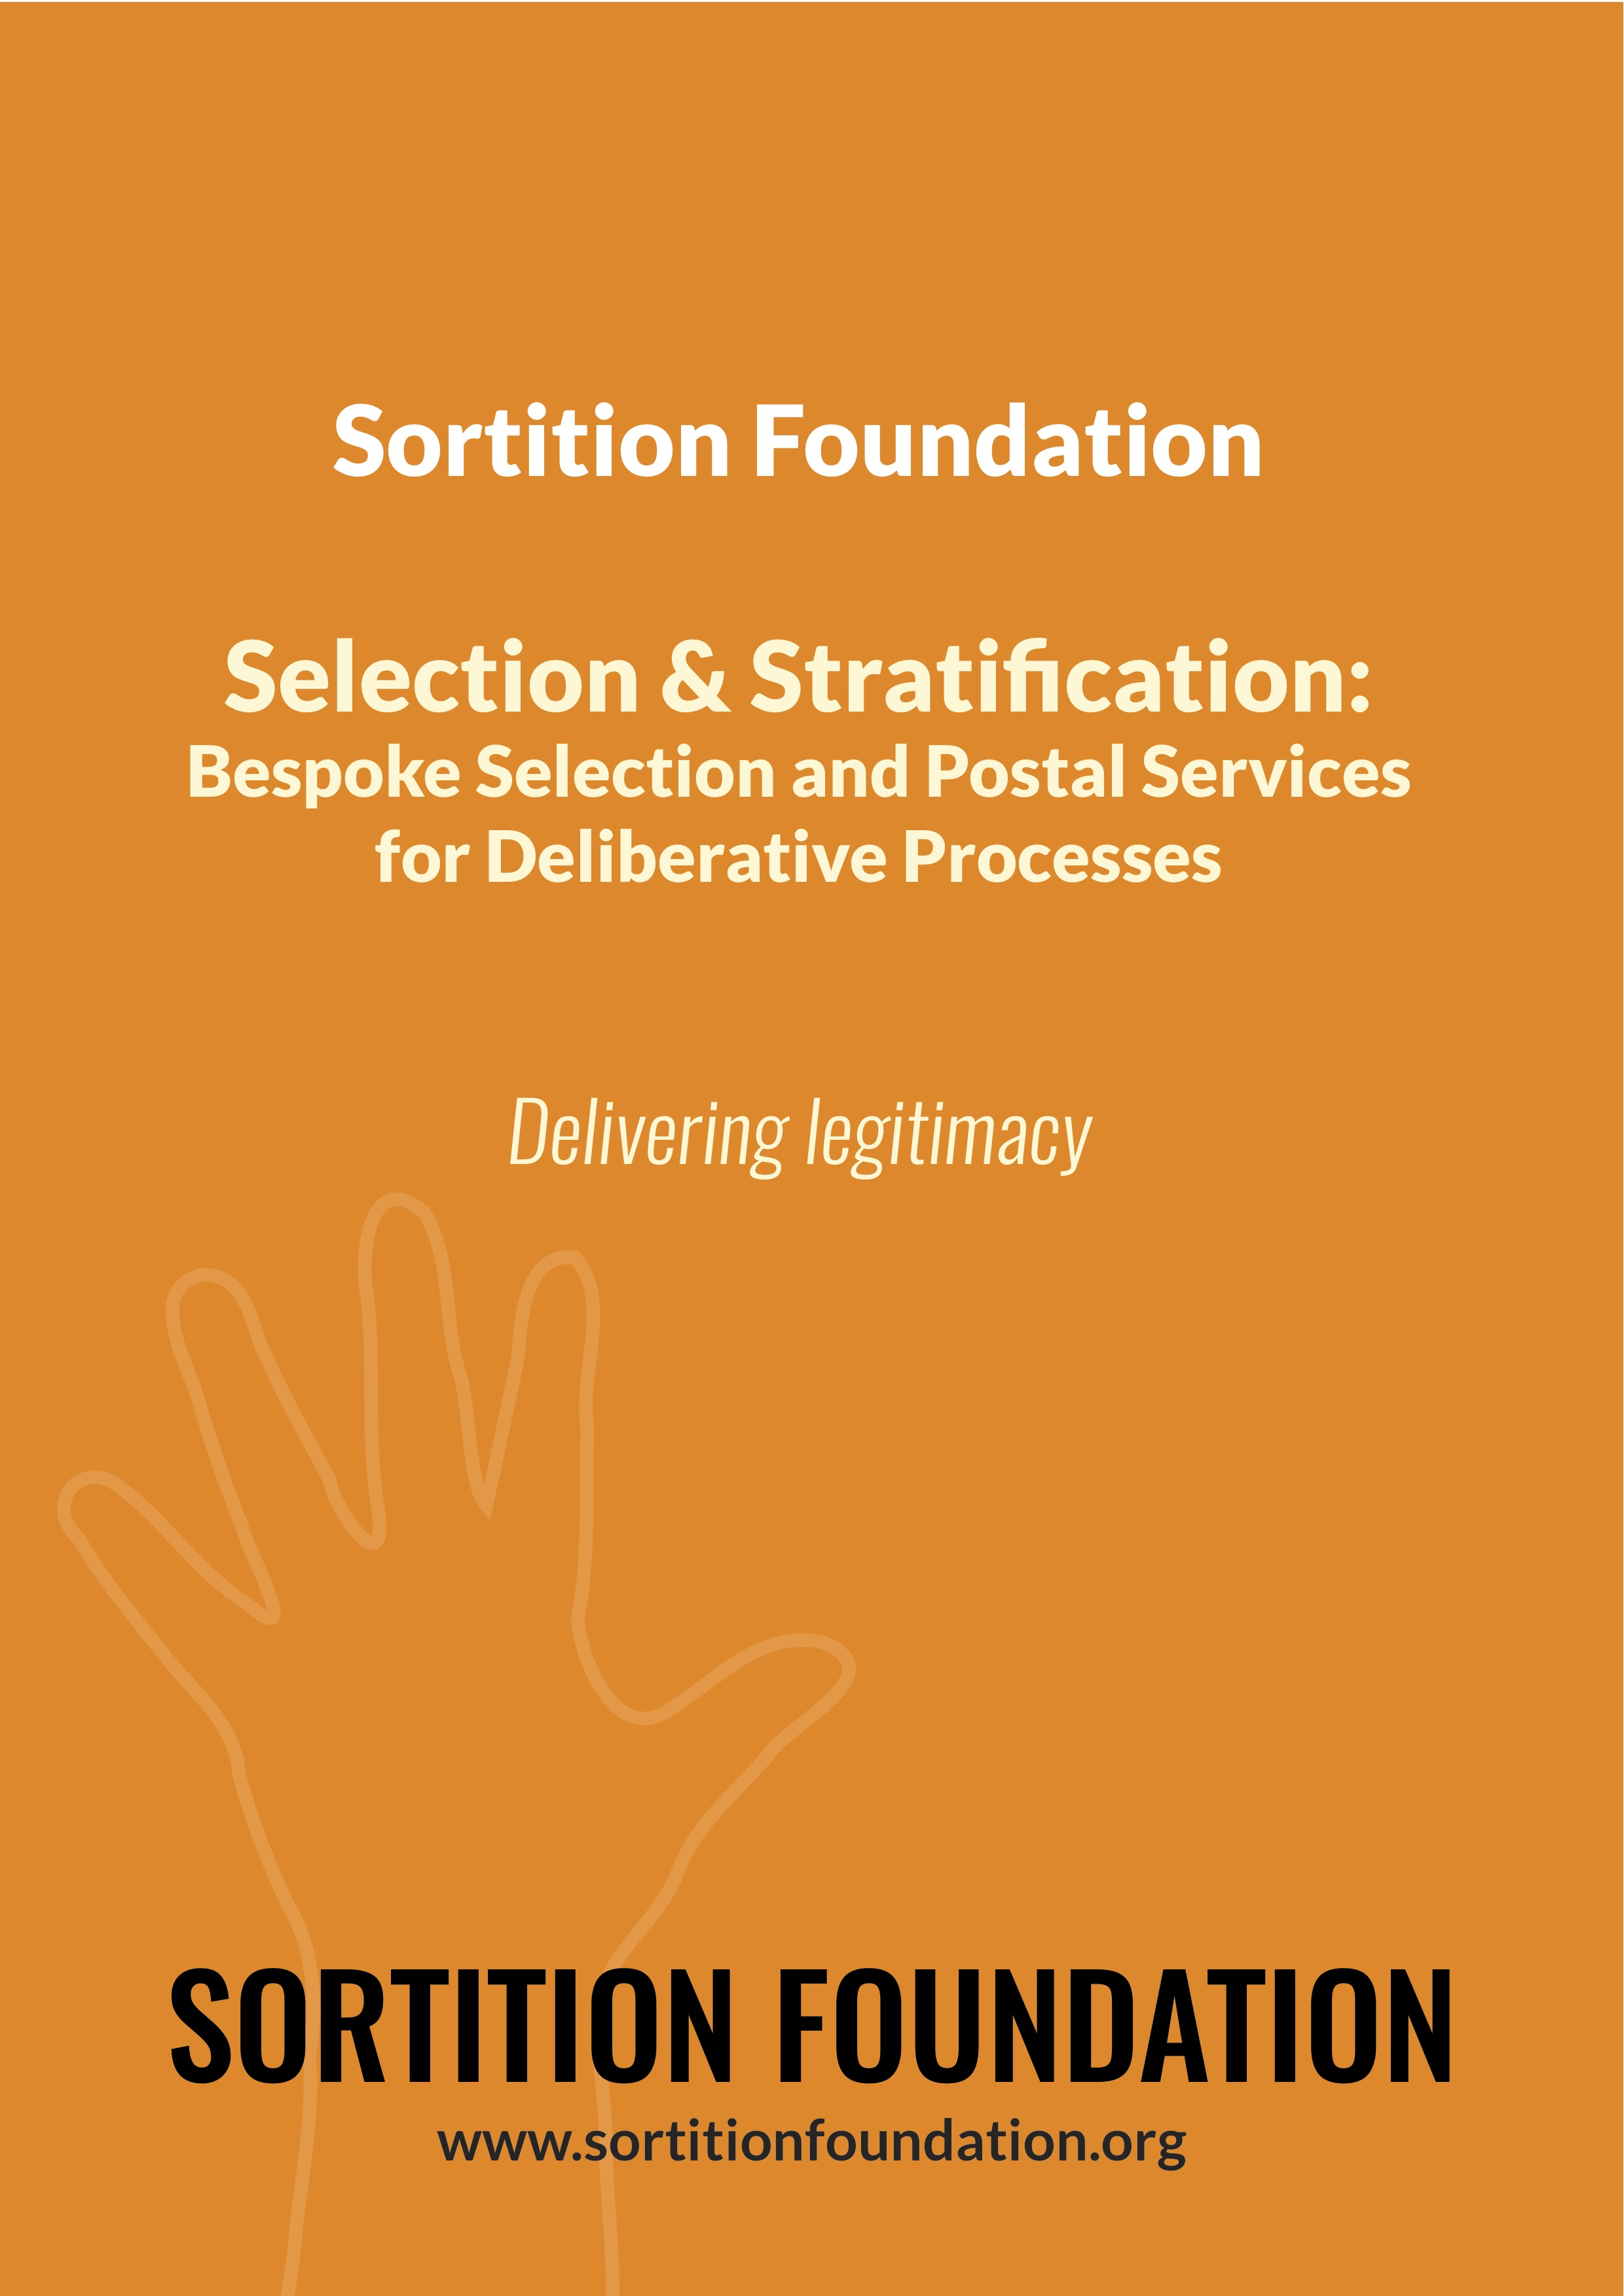 Sortition Foundation Services